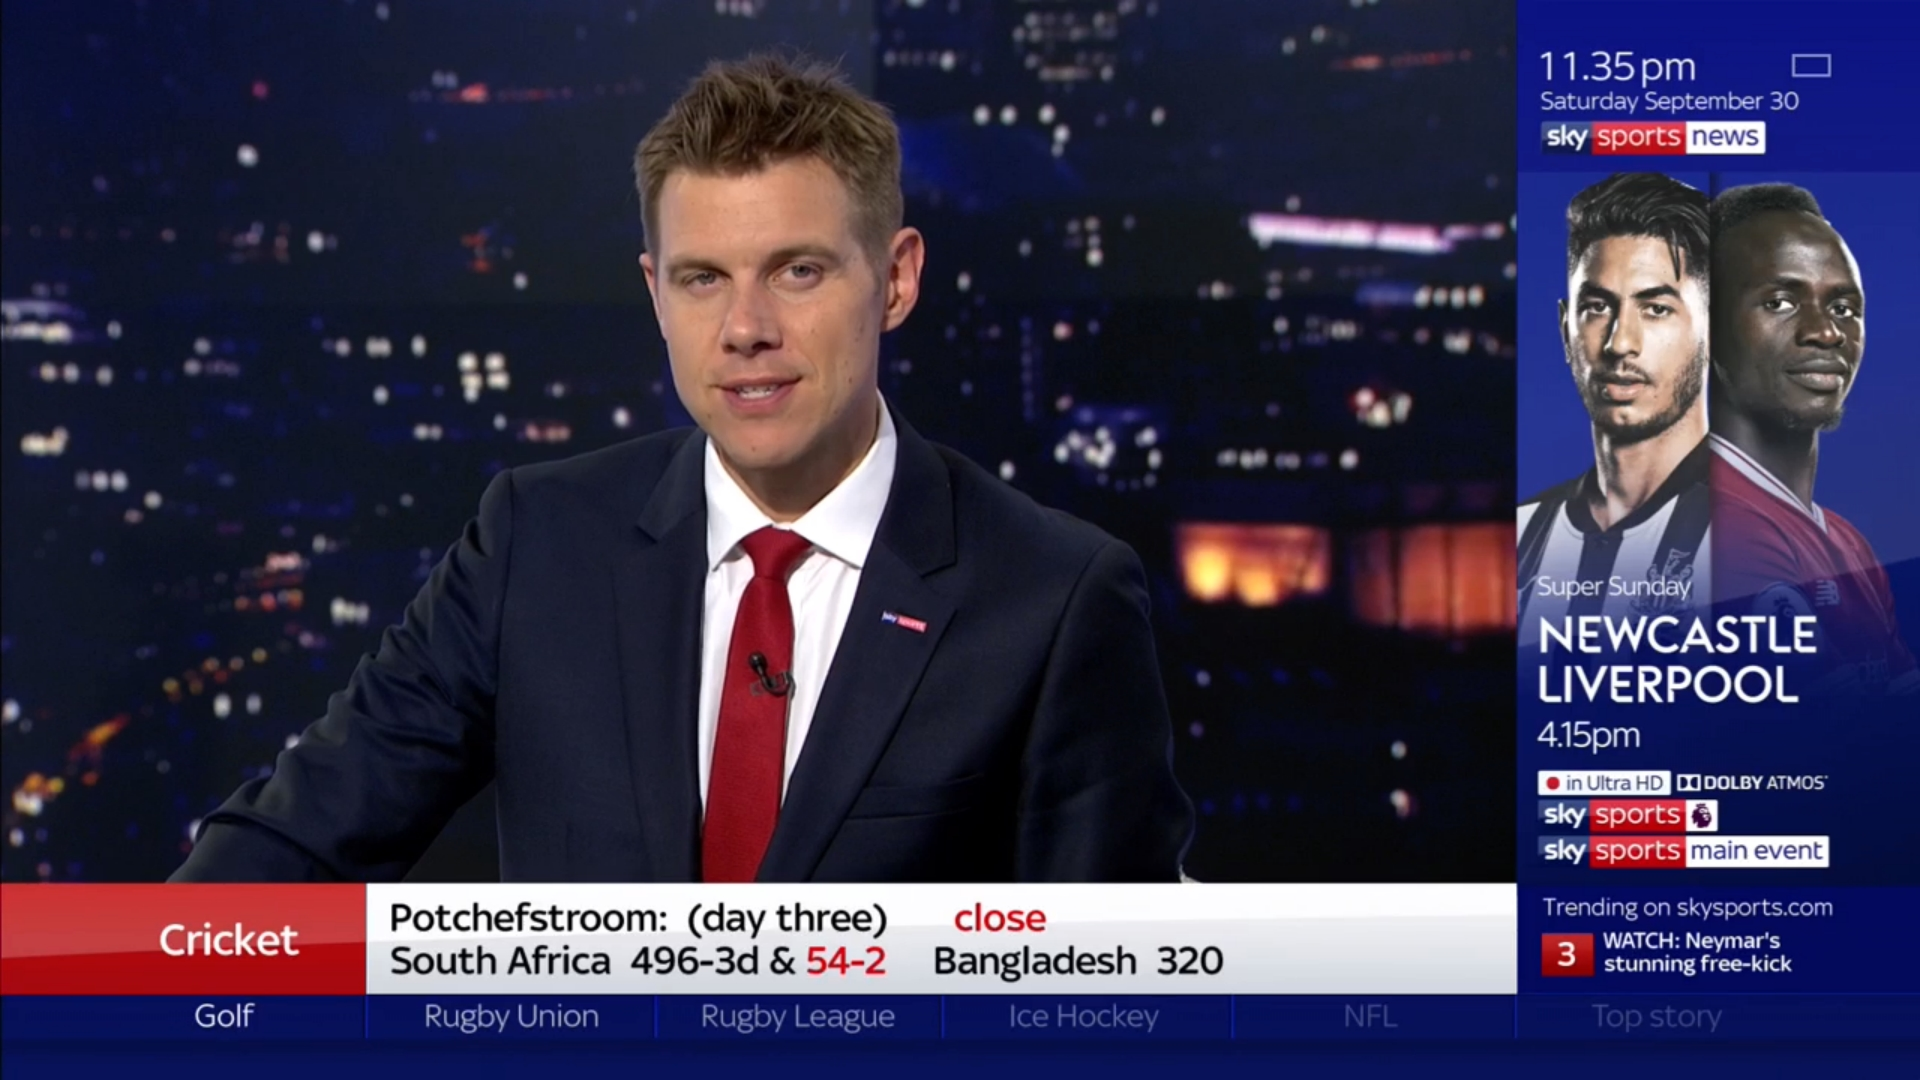 Tony Wrighton Sky Sports News Presenter (1)